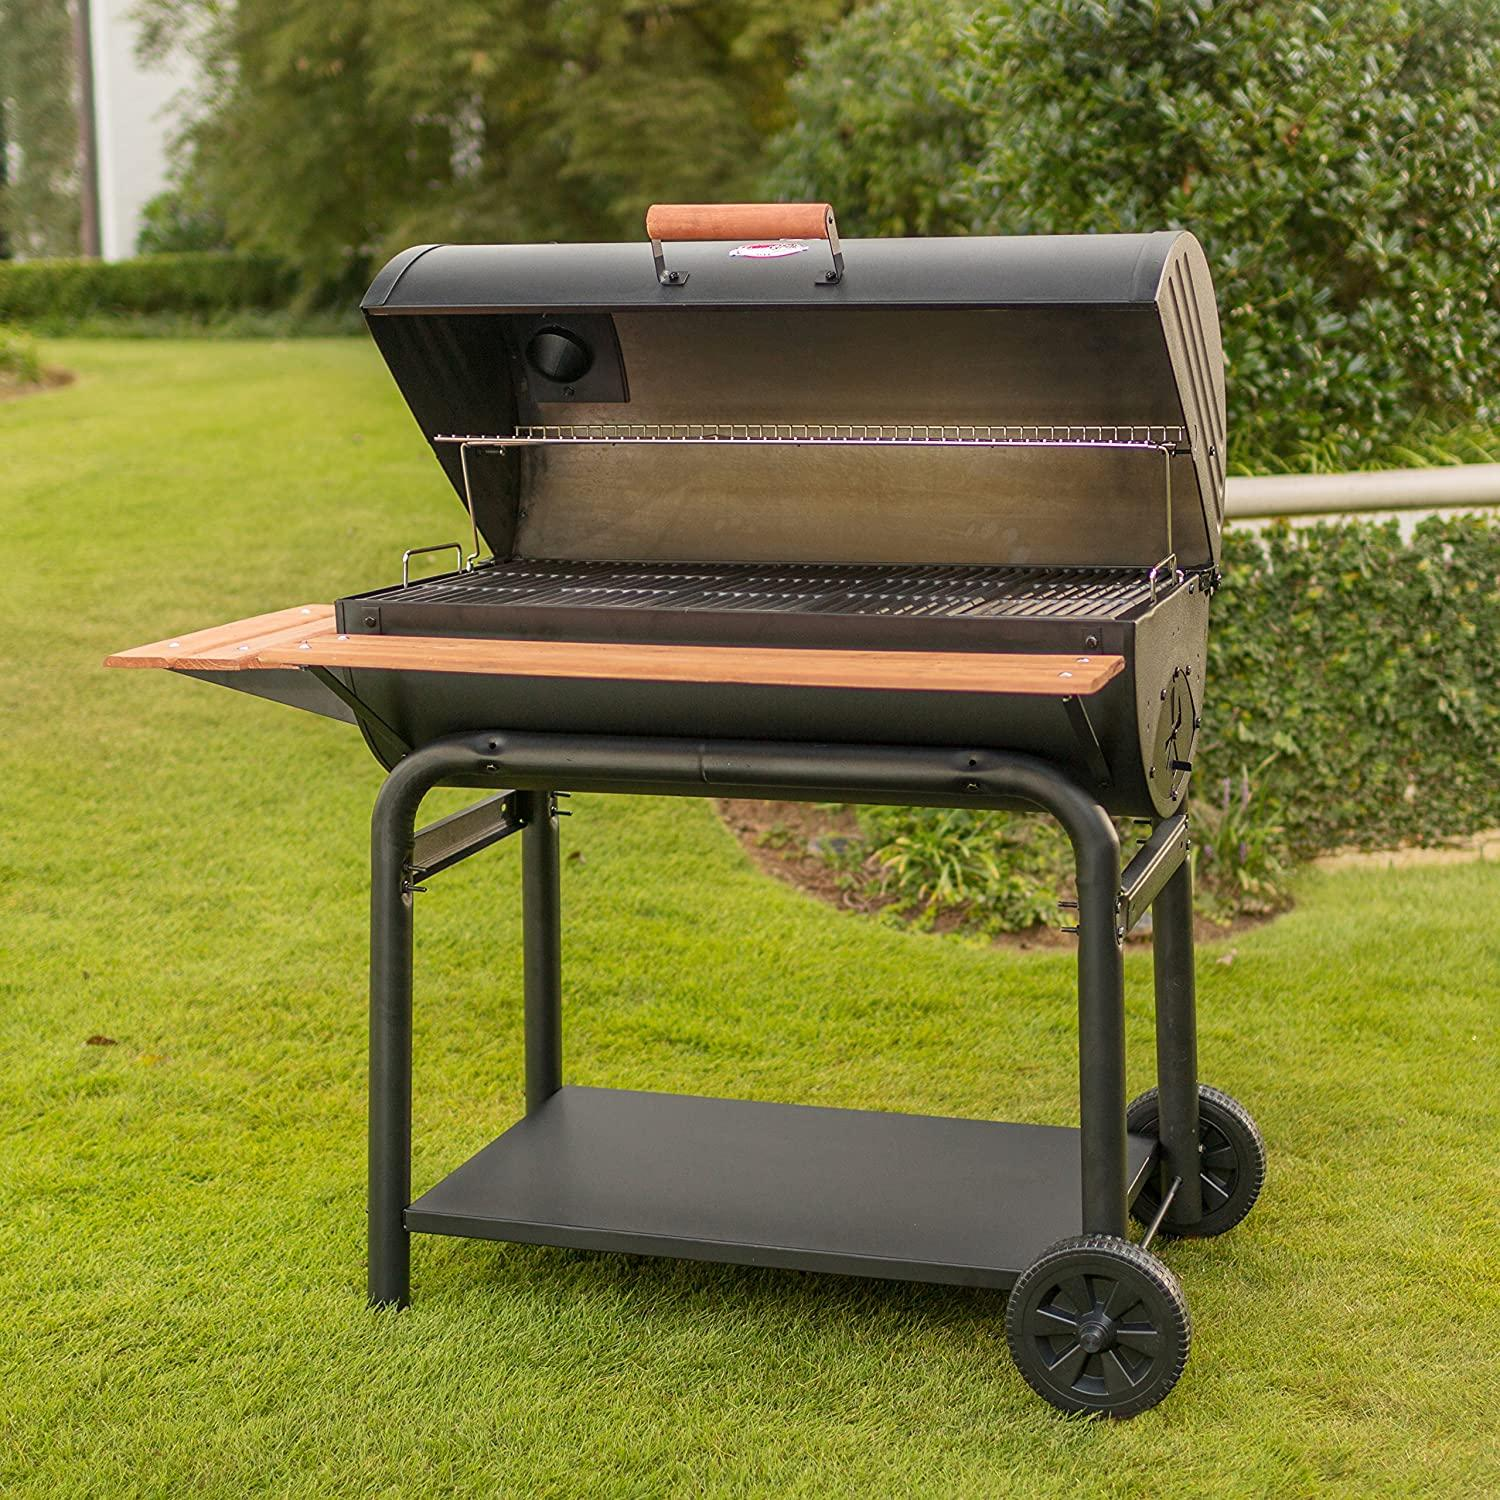 Are Char-Griller Grills Made in the USA?